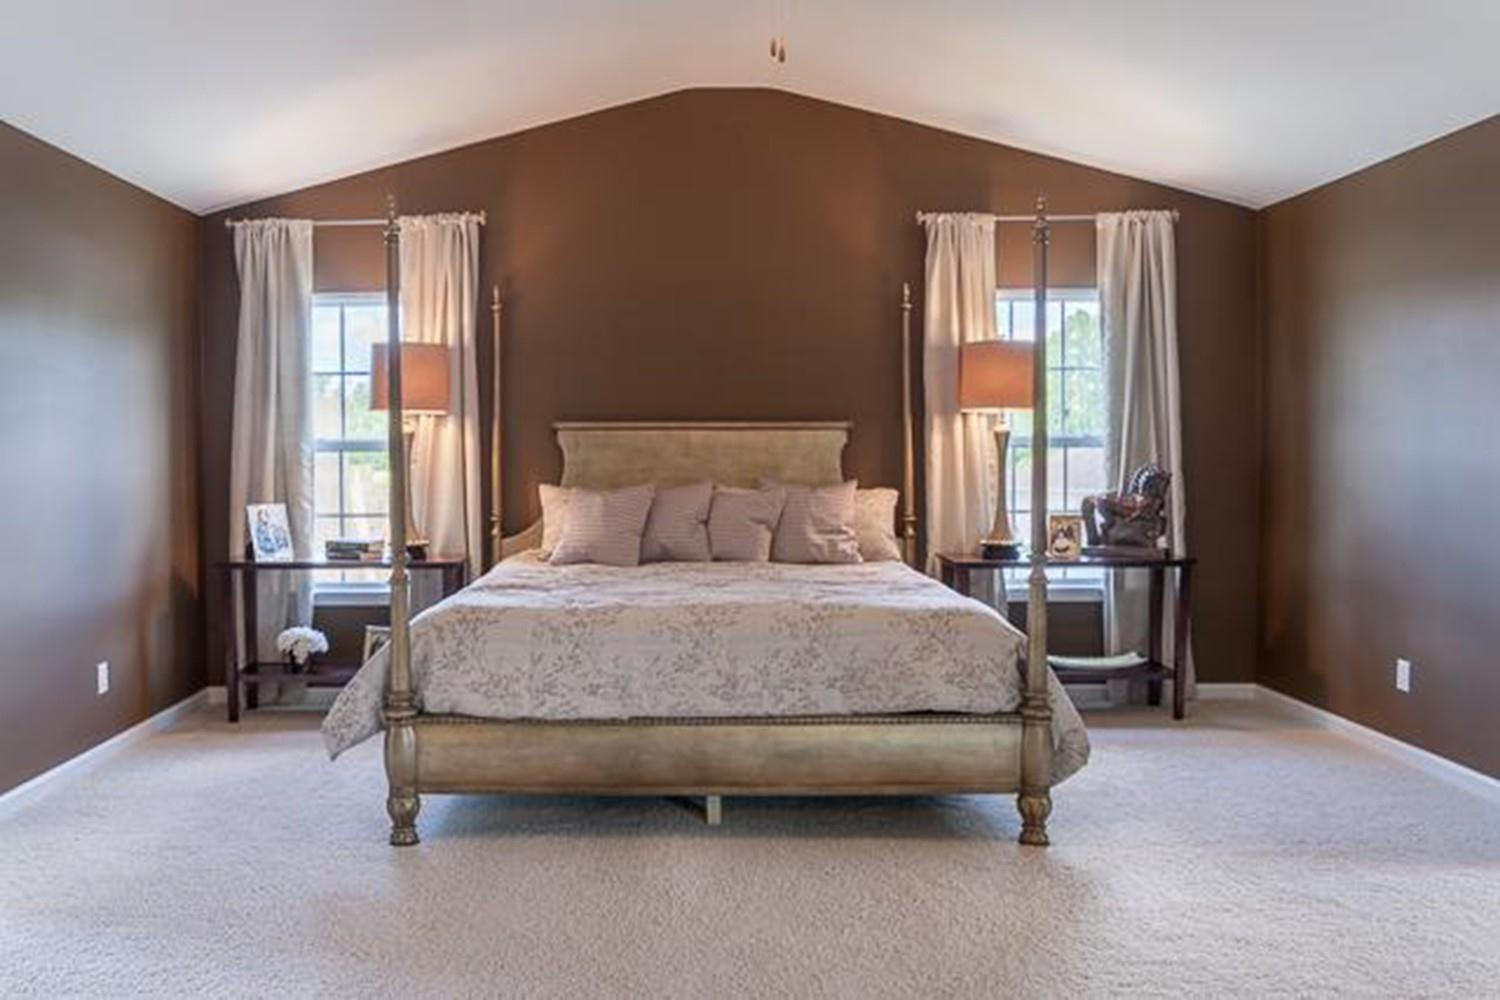 Bedroom featured in The Savannah By Lamar Smith Homes in Savannah, GA